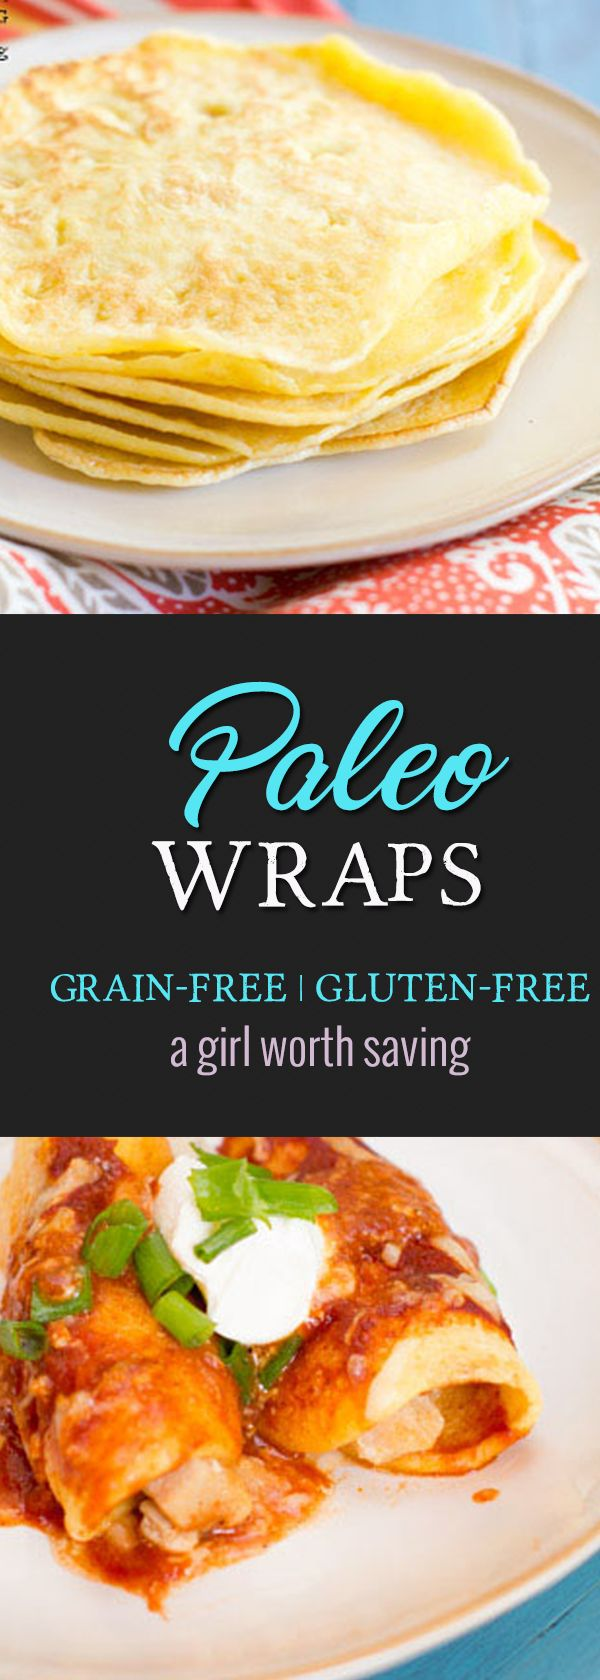 A paleo wraps recipe that is nut-free and NOT EGGY! Made with sesame seeds this recipe is nut-free and dairy-free. It folds just like traditional wraps.  via @bejelly